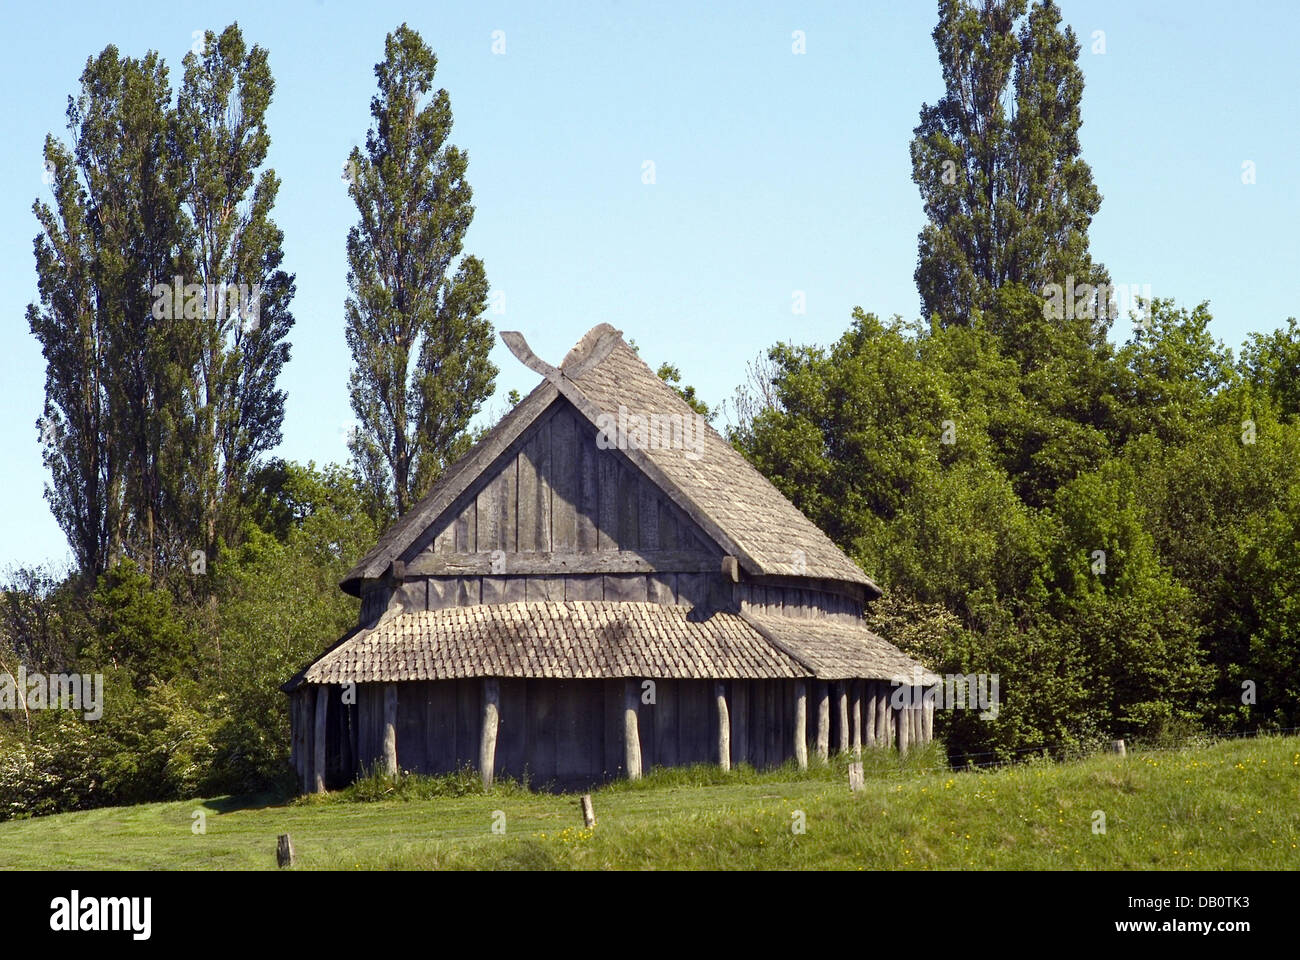 The Photo Depicts A Typical Viking Longhouse Inside The